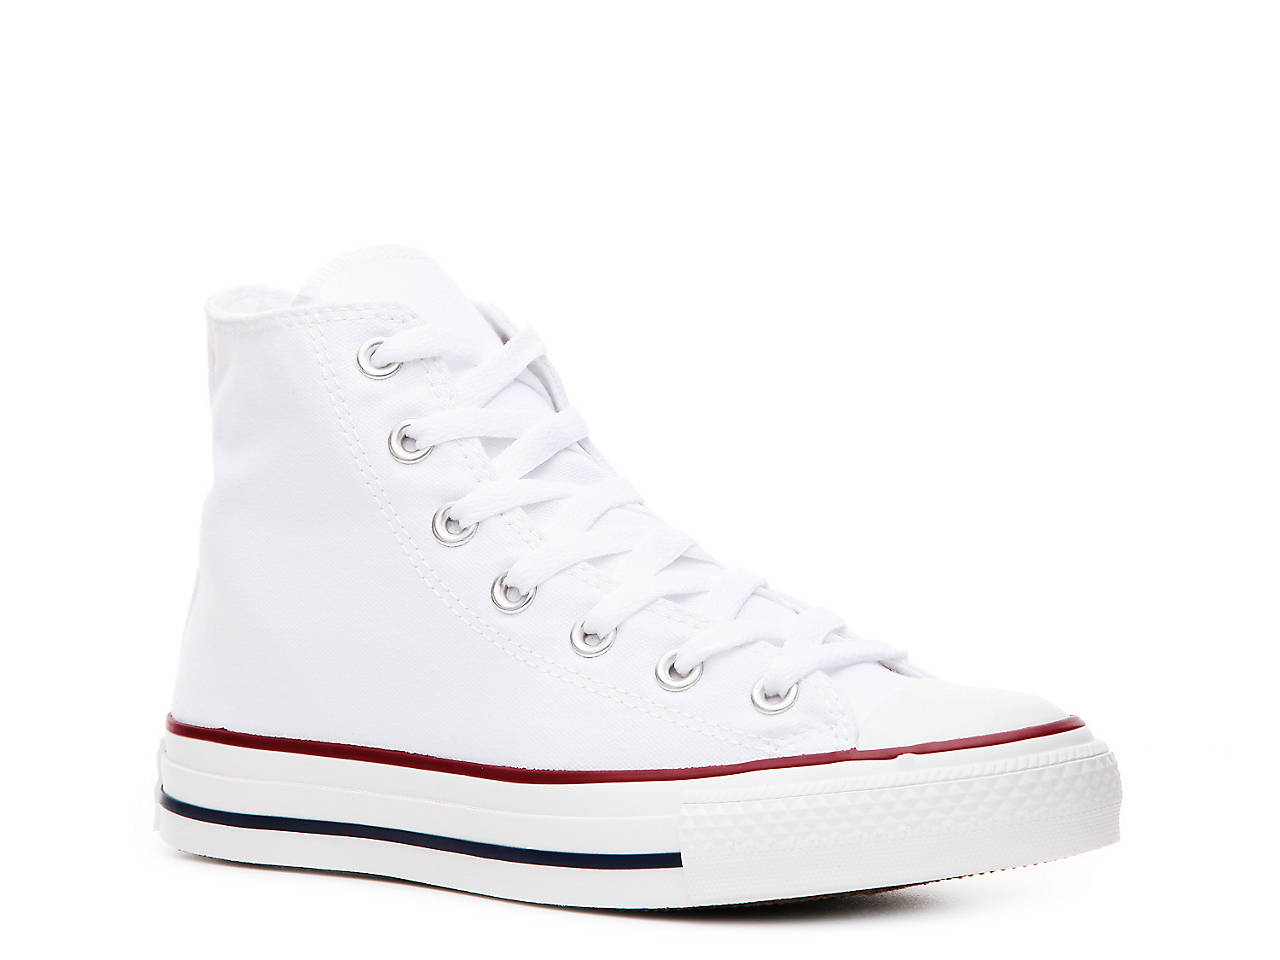 b4768ffcde5a Converse Chuck Taylor All Star High-Top Sneaker - Women s Women s ...